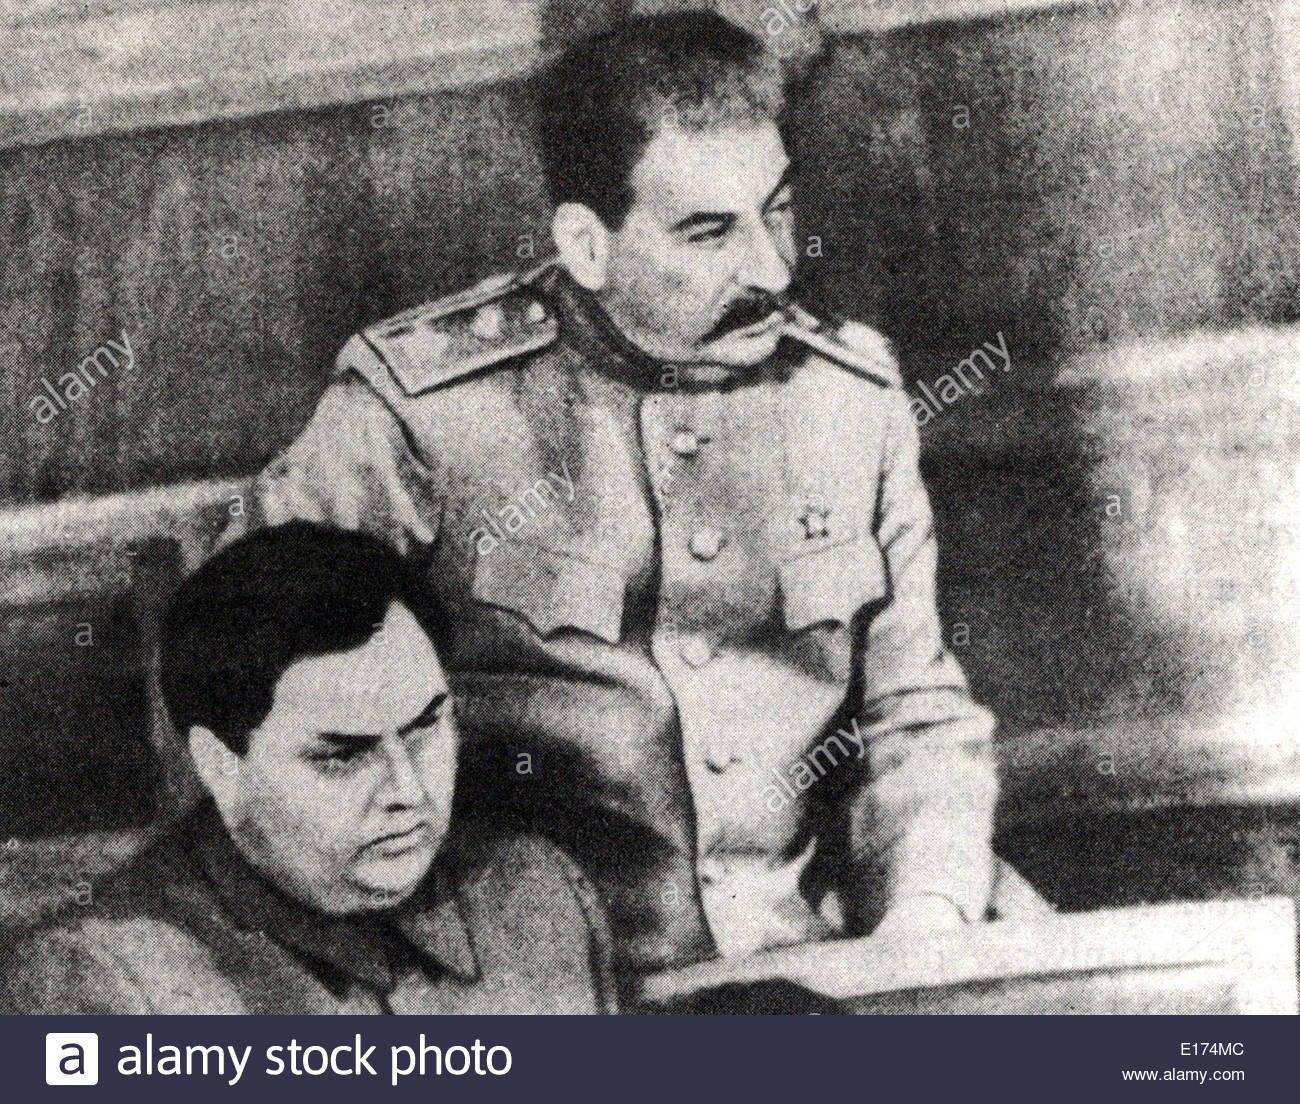 Georgy Malenkow and joseph Stalin - Stock Image